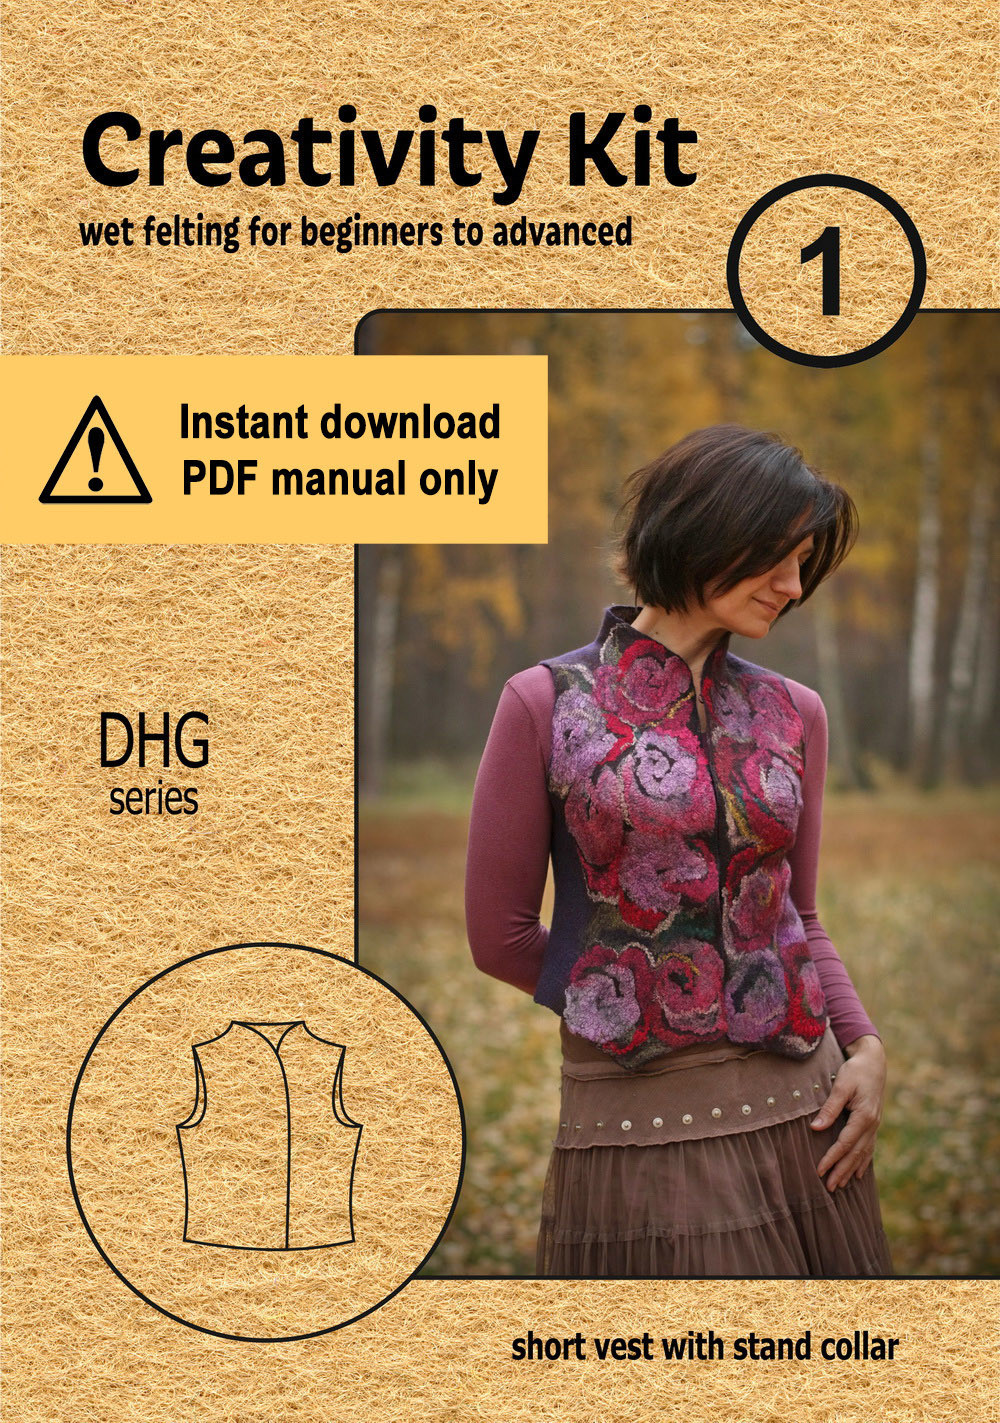 Dhg.1 / Short vest with stand collar